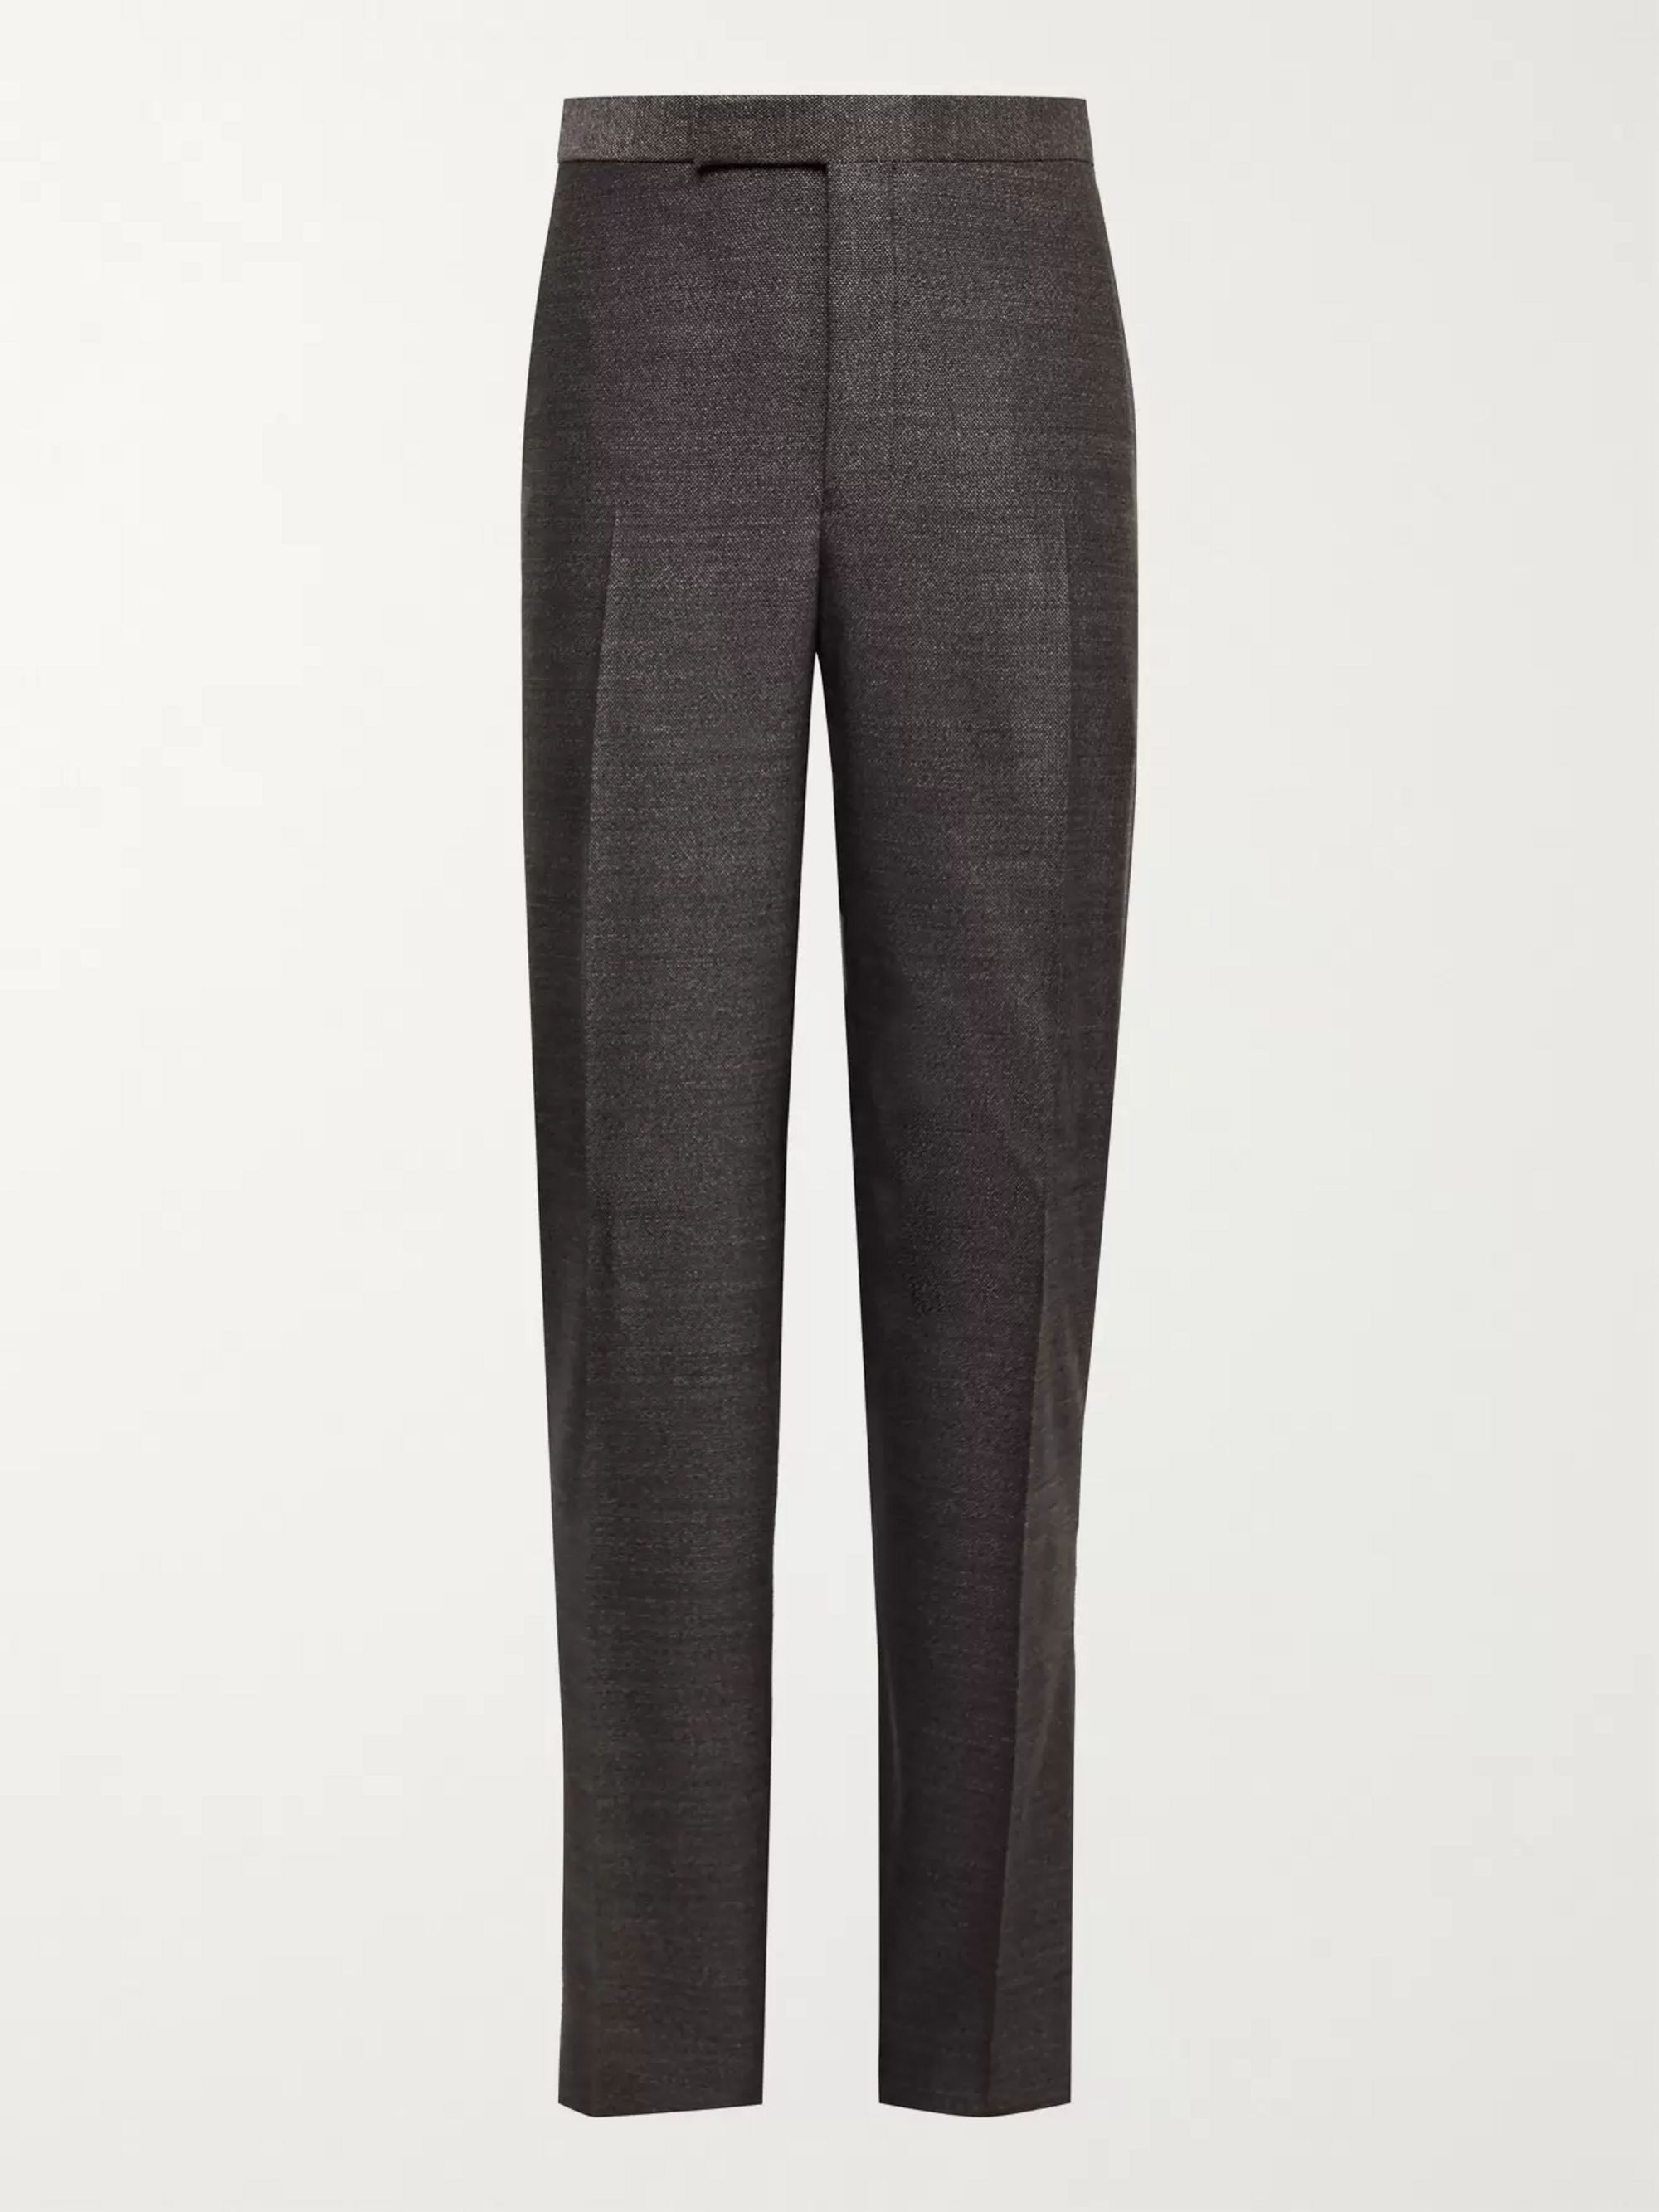 RICHARD JAMES Slim-Fit Wool Trousers